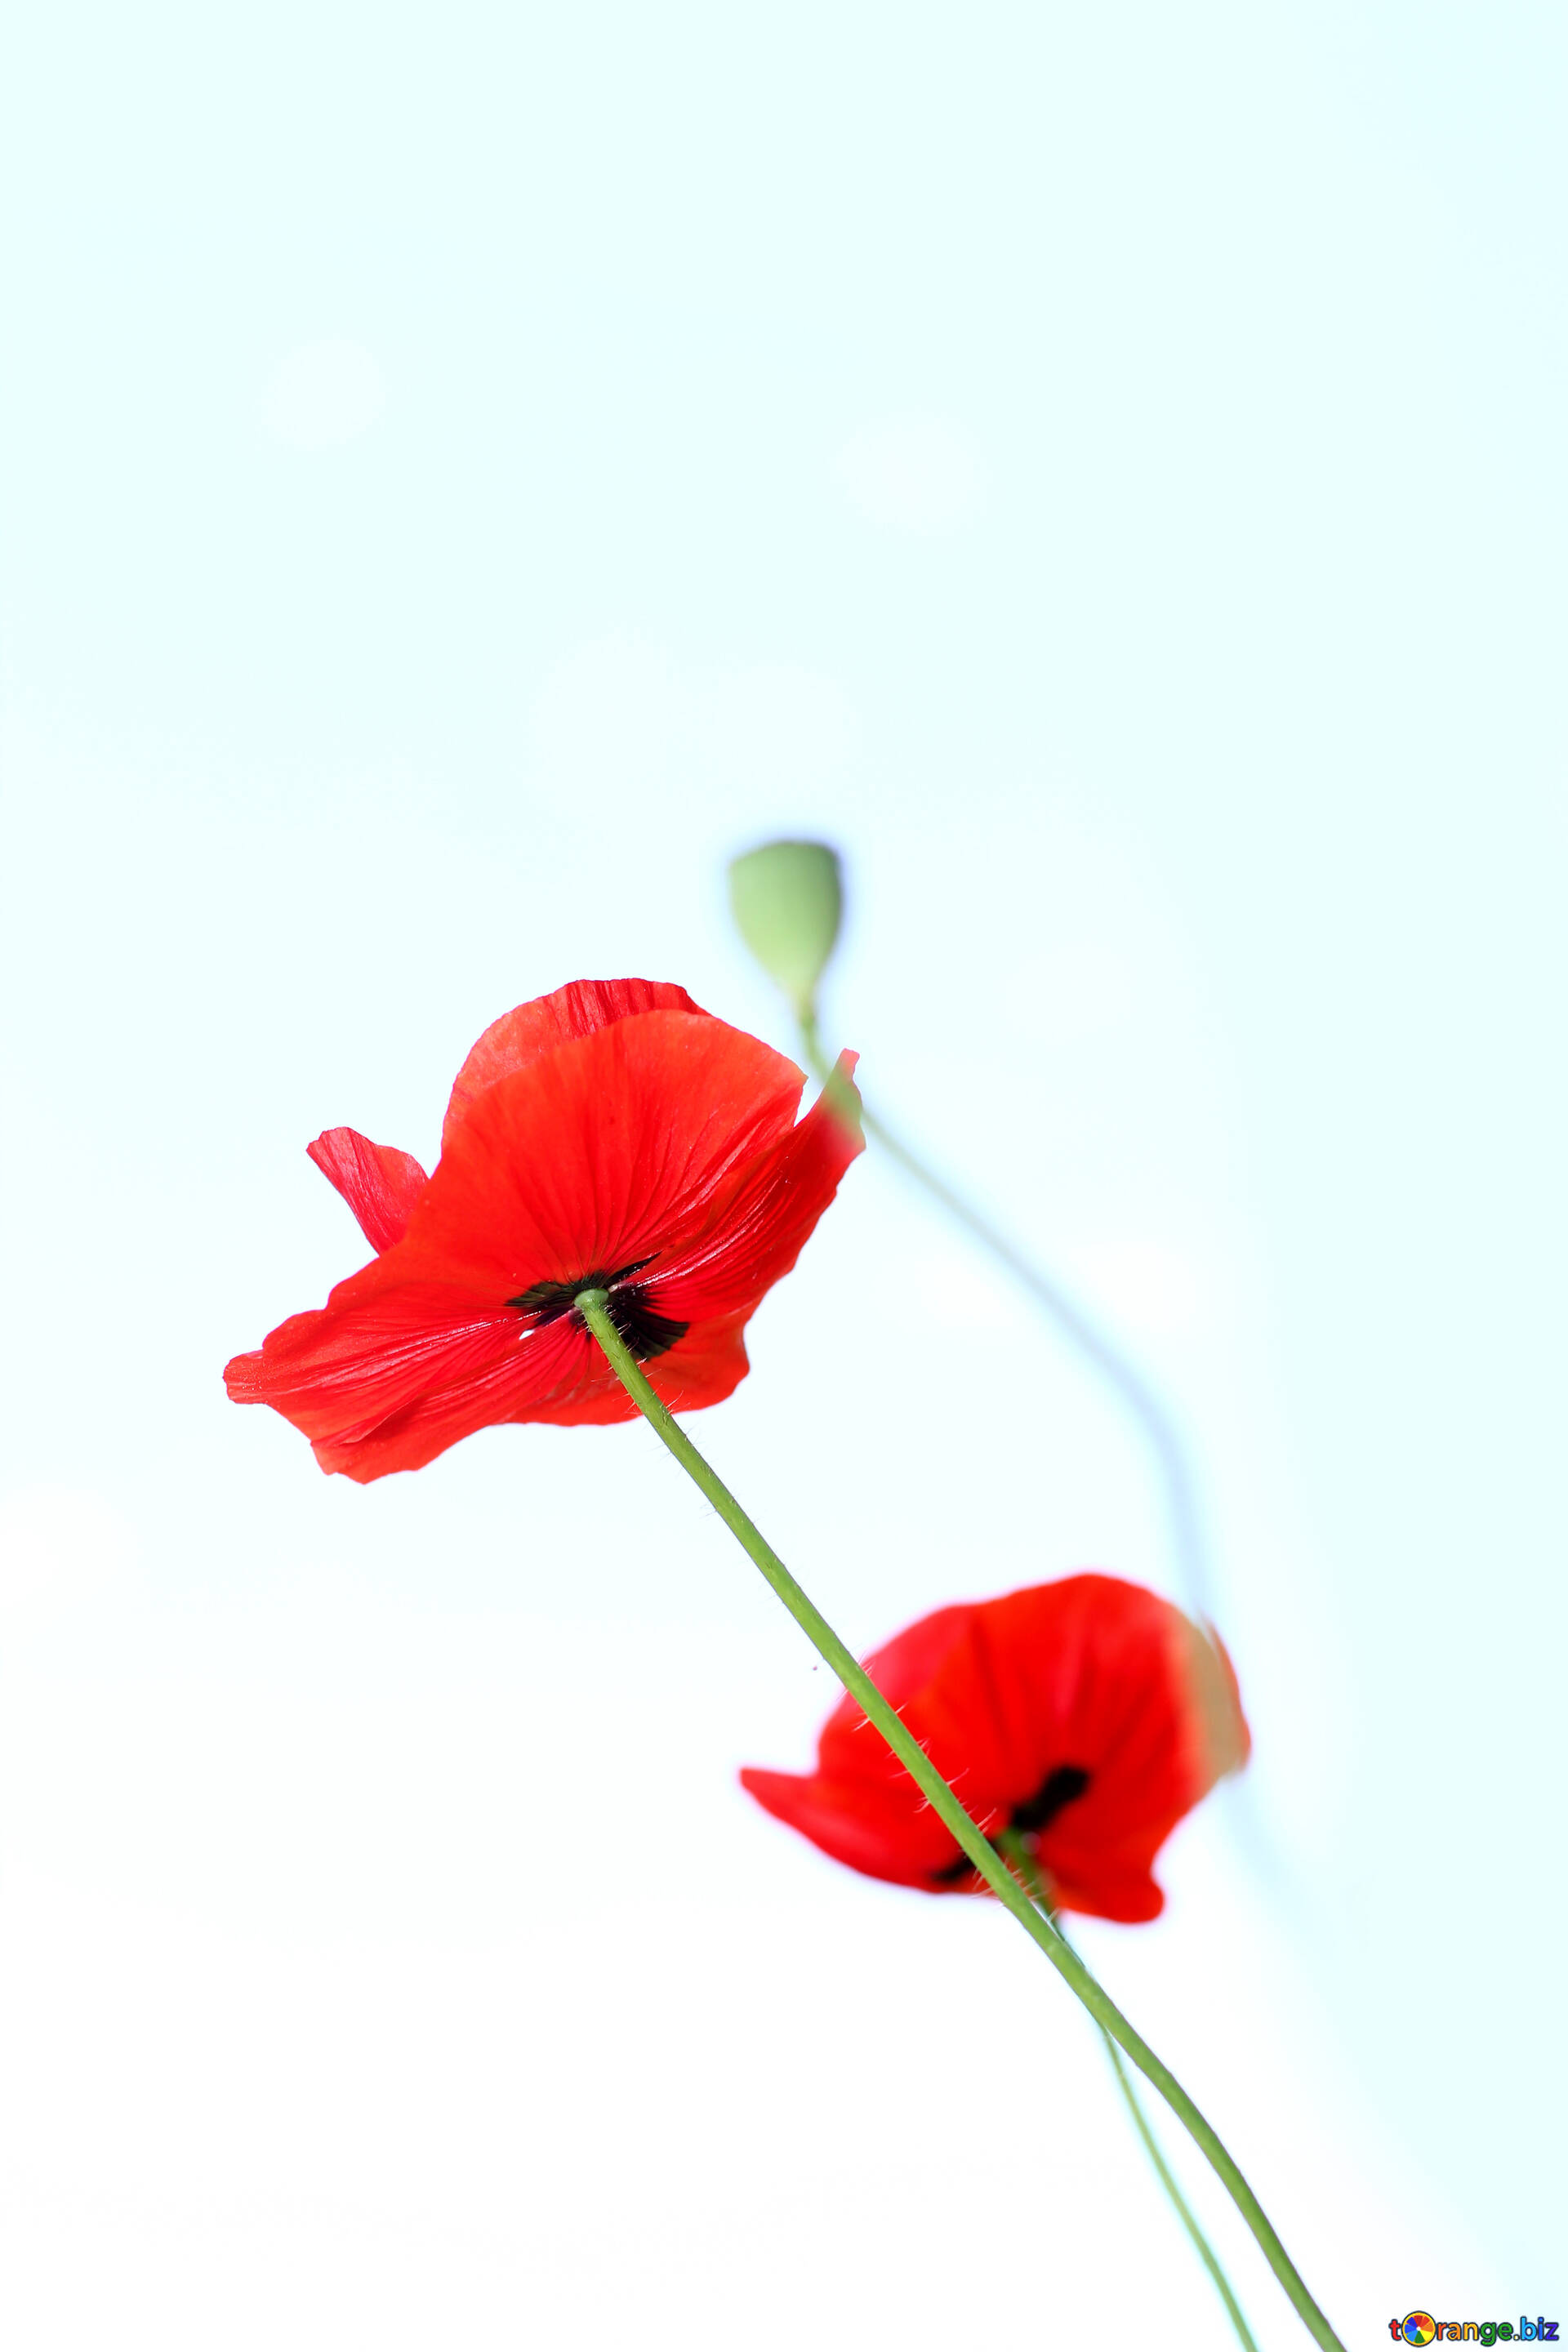 Flowers Poppies Isolated On A White Background Poppy Flowers With No